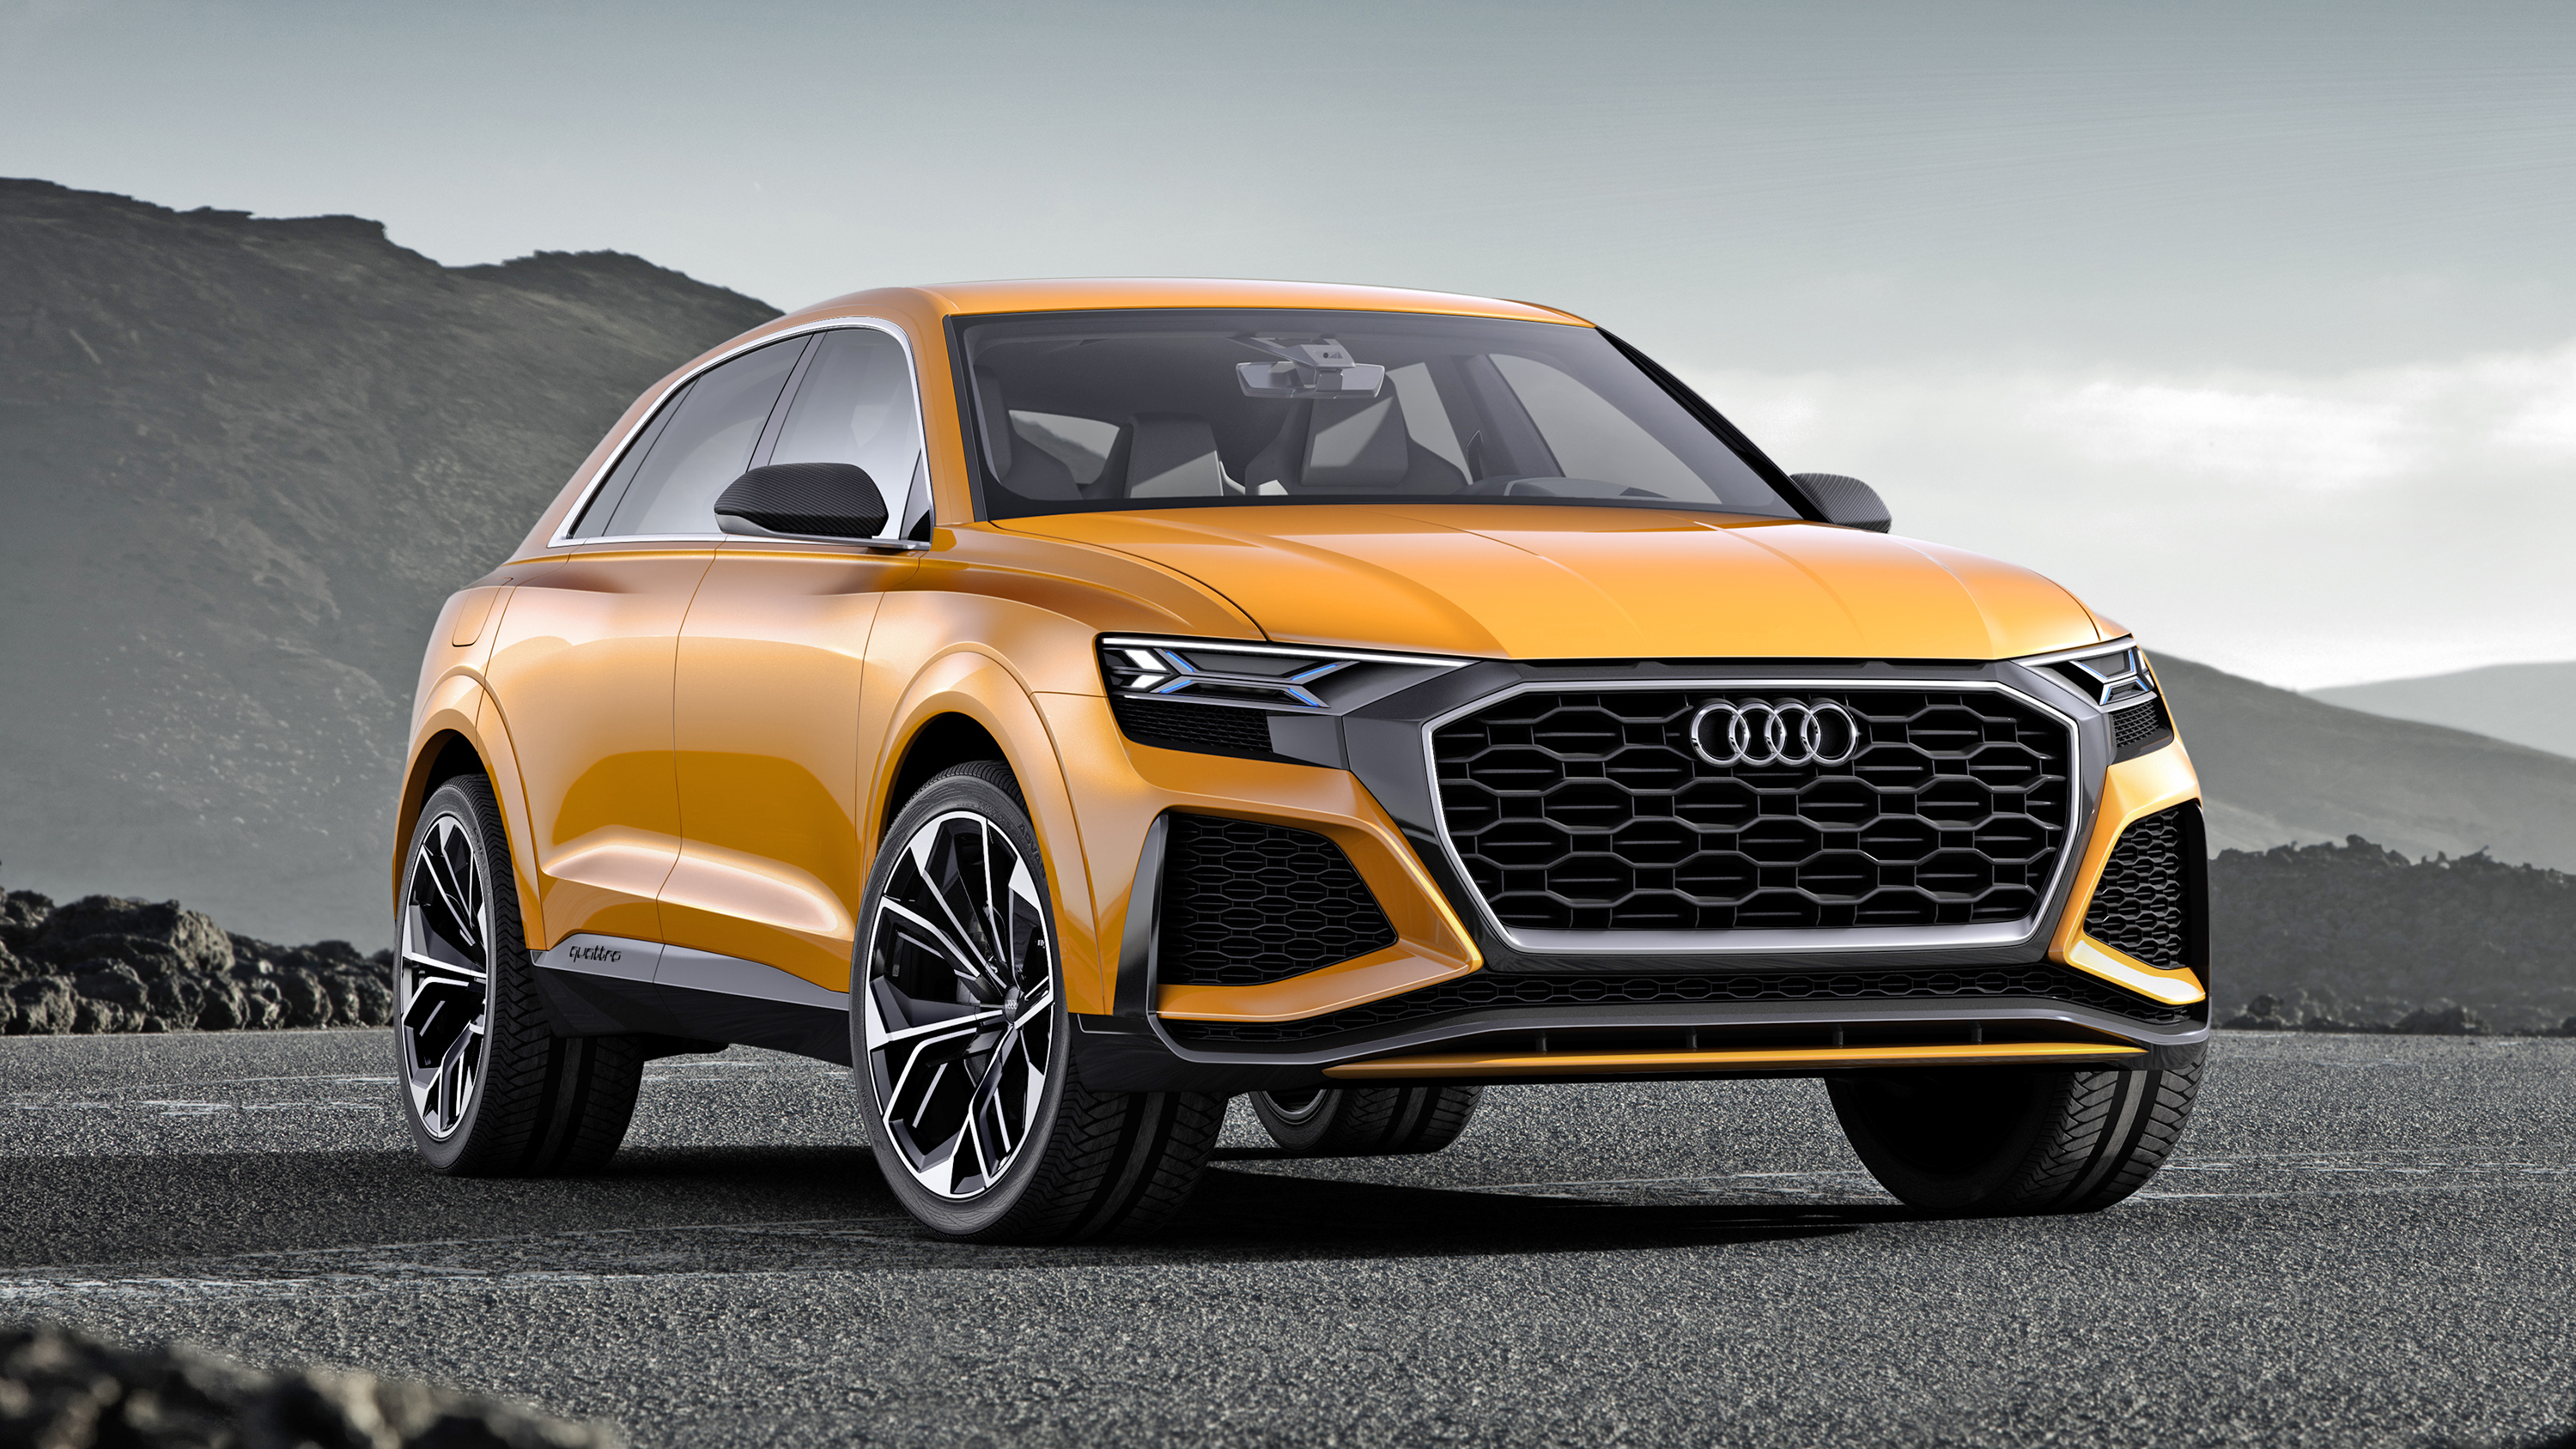 tron models show suv frankfurt deliveries quattro europe news this audi fall start e in auto h electric concept